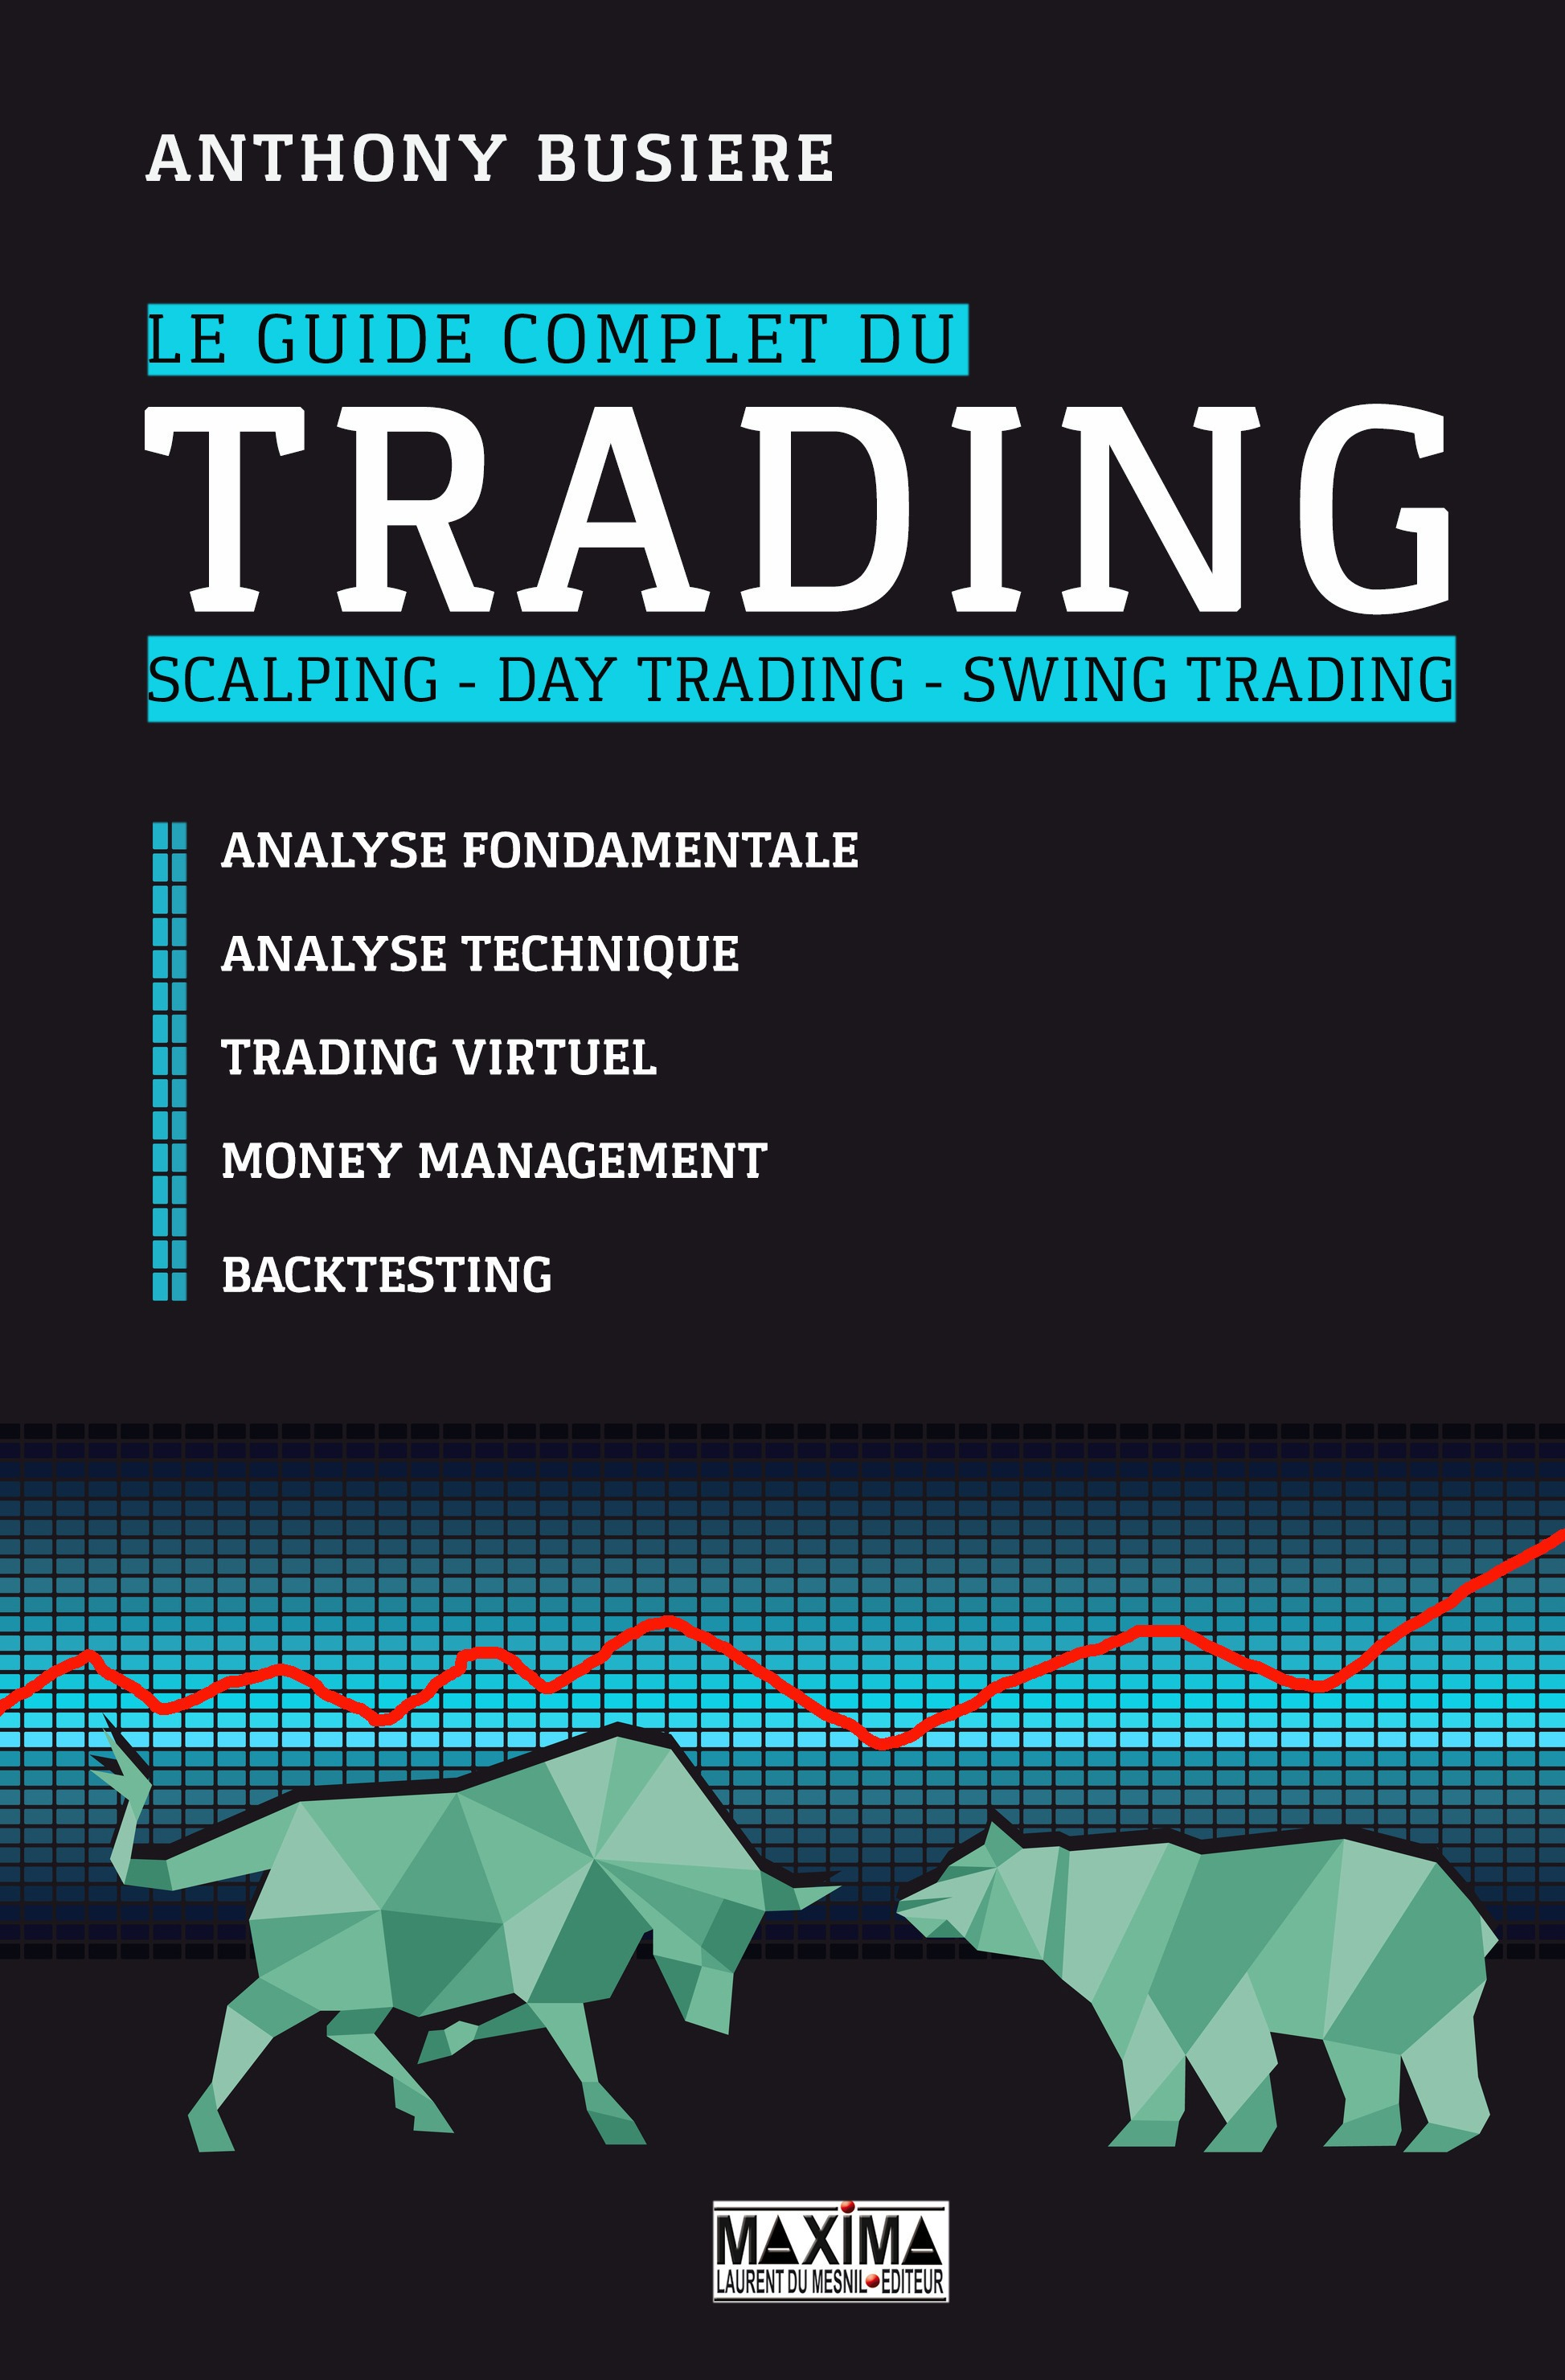 Le guide complet du trading - Scalping, day trading, swing trading, ANALYSE FONDAMENTALE, ANALYSE TECHNIQUE, TRADING VIRTUEL, MONEY MANAGEMENT, BACKTESTING